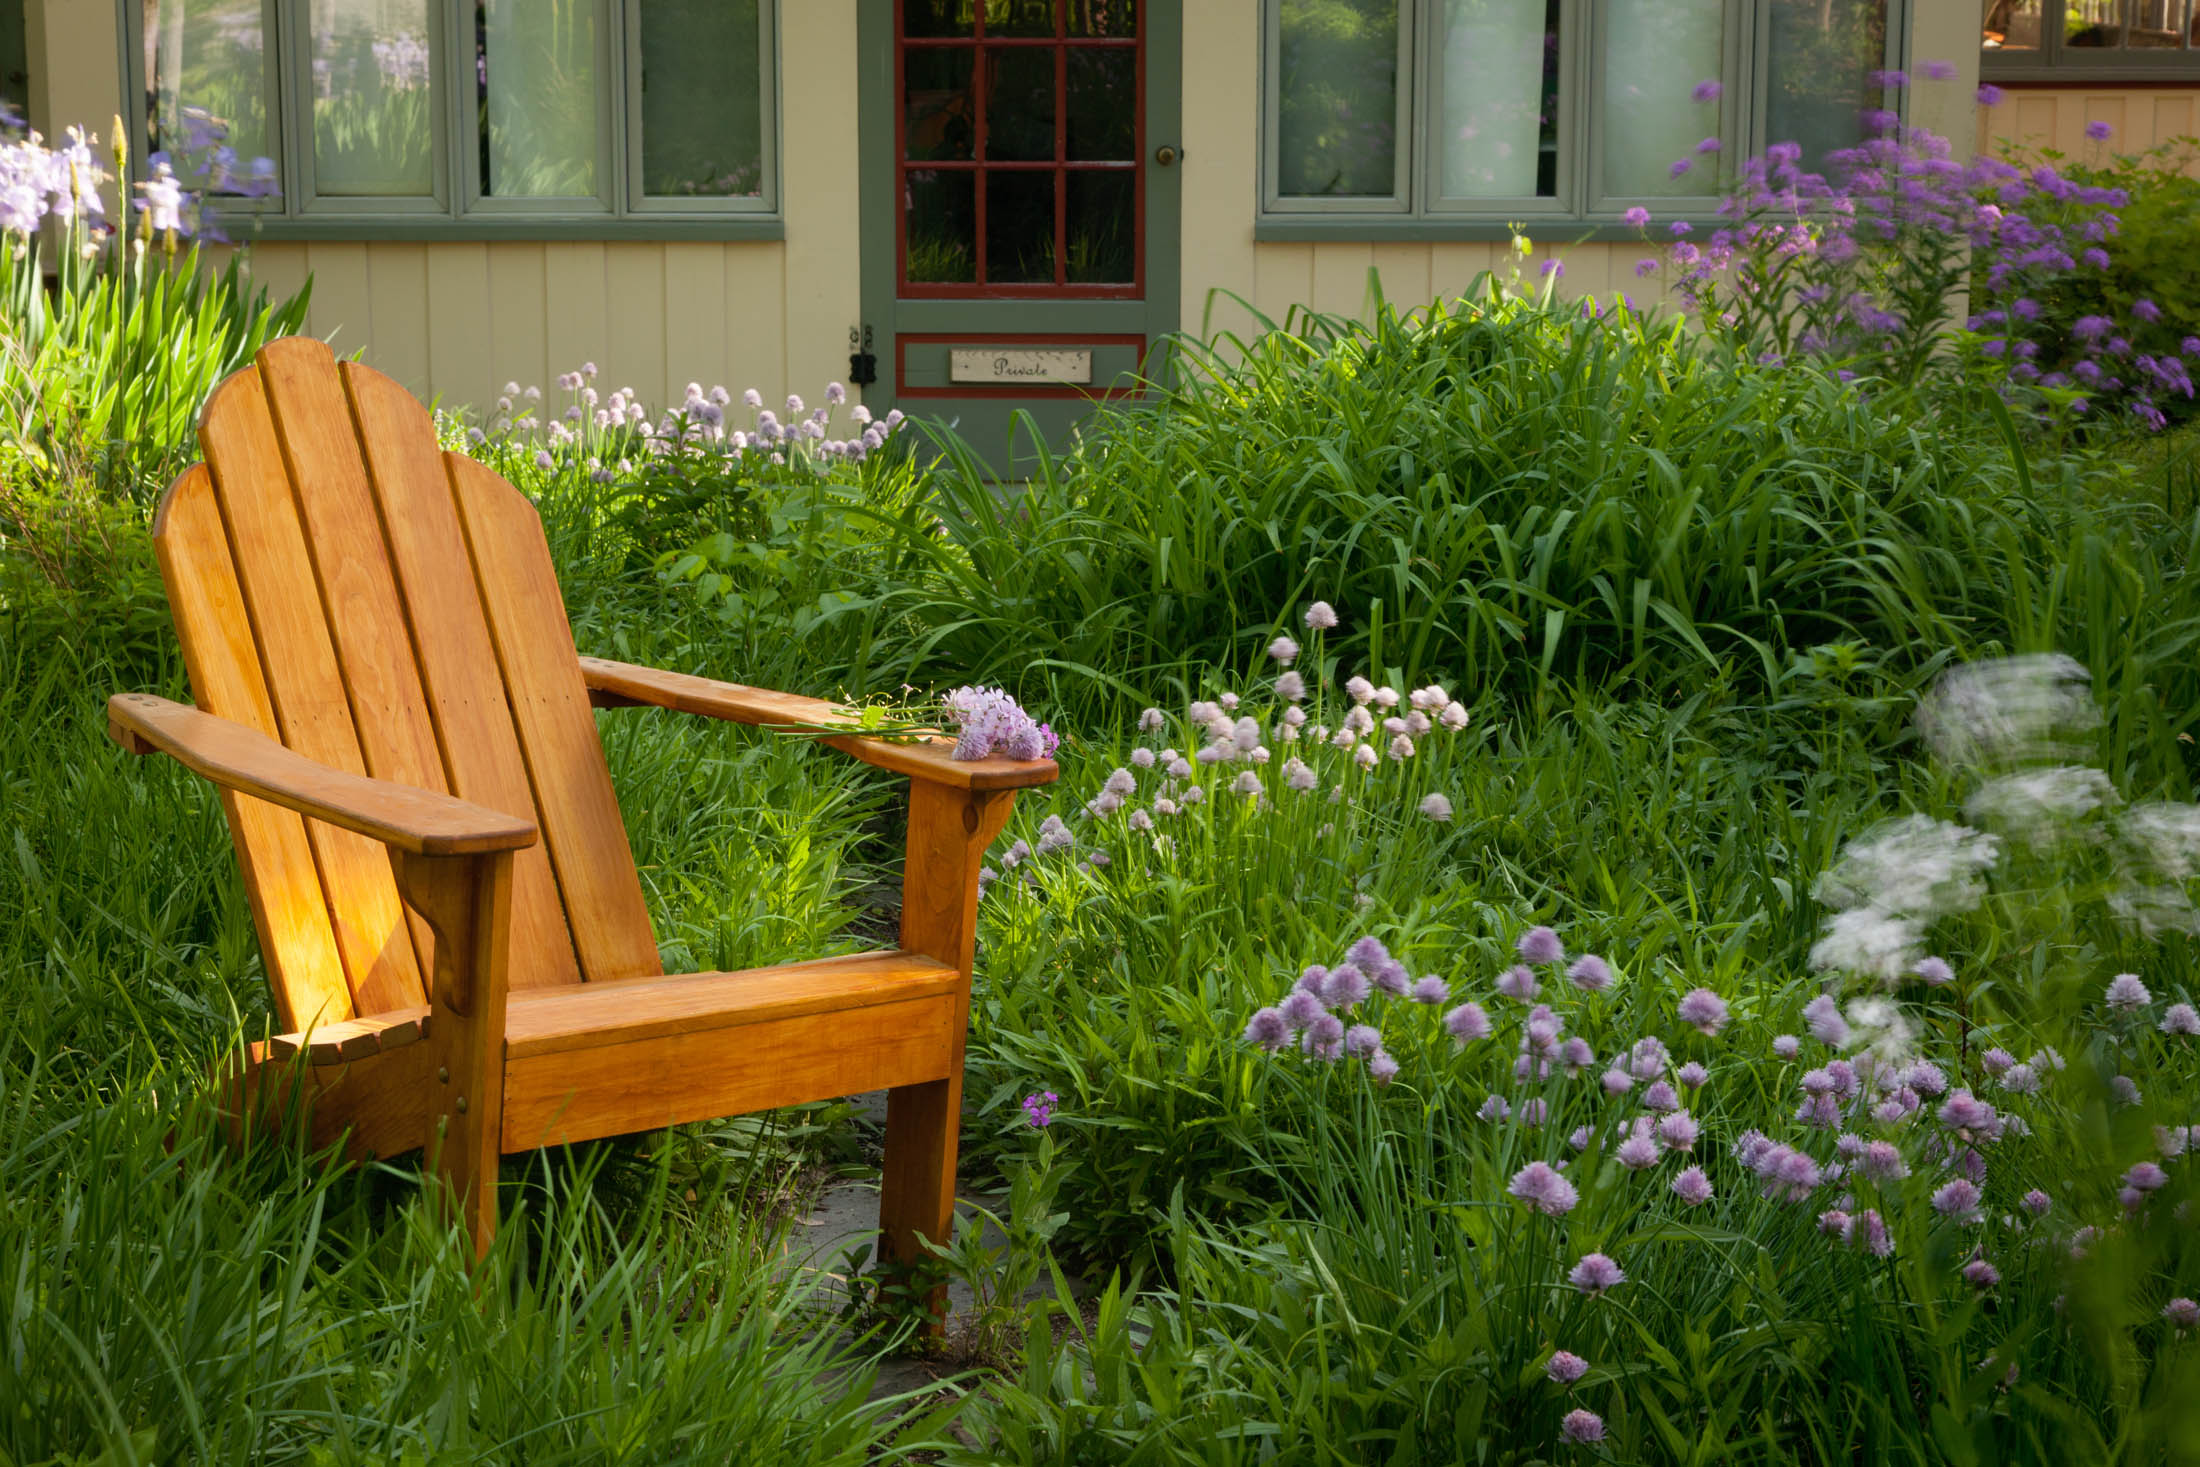 A chair in the garden